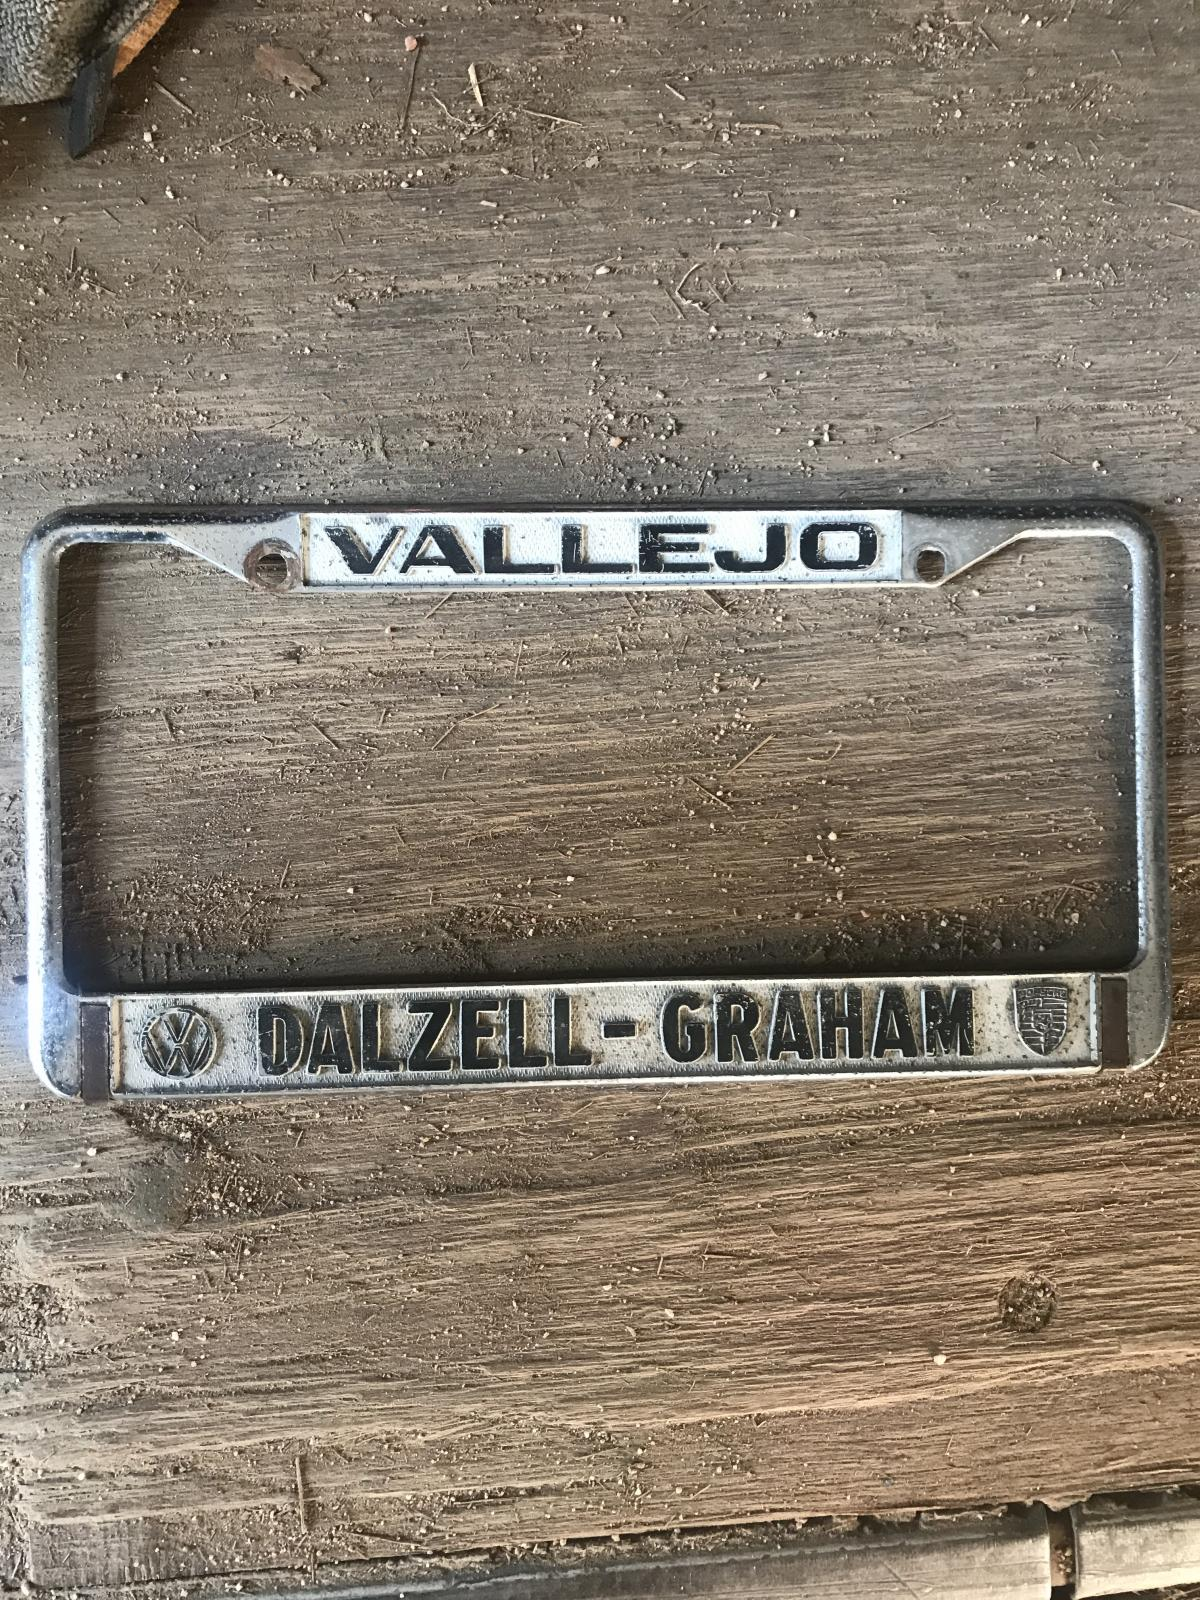 Vallejo dealership frame